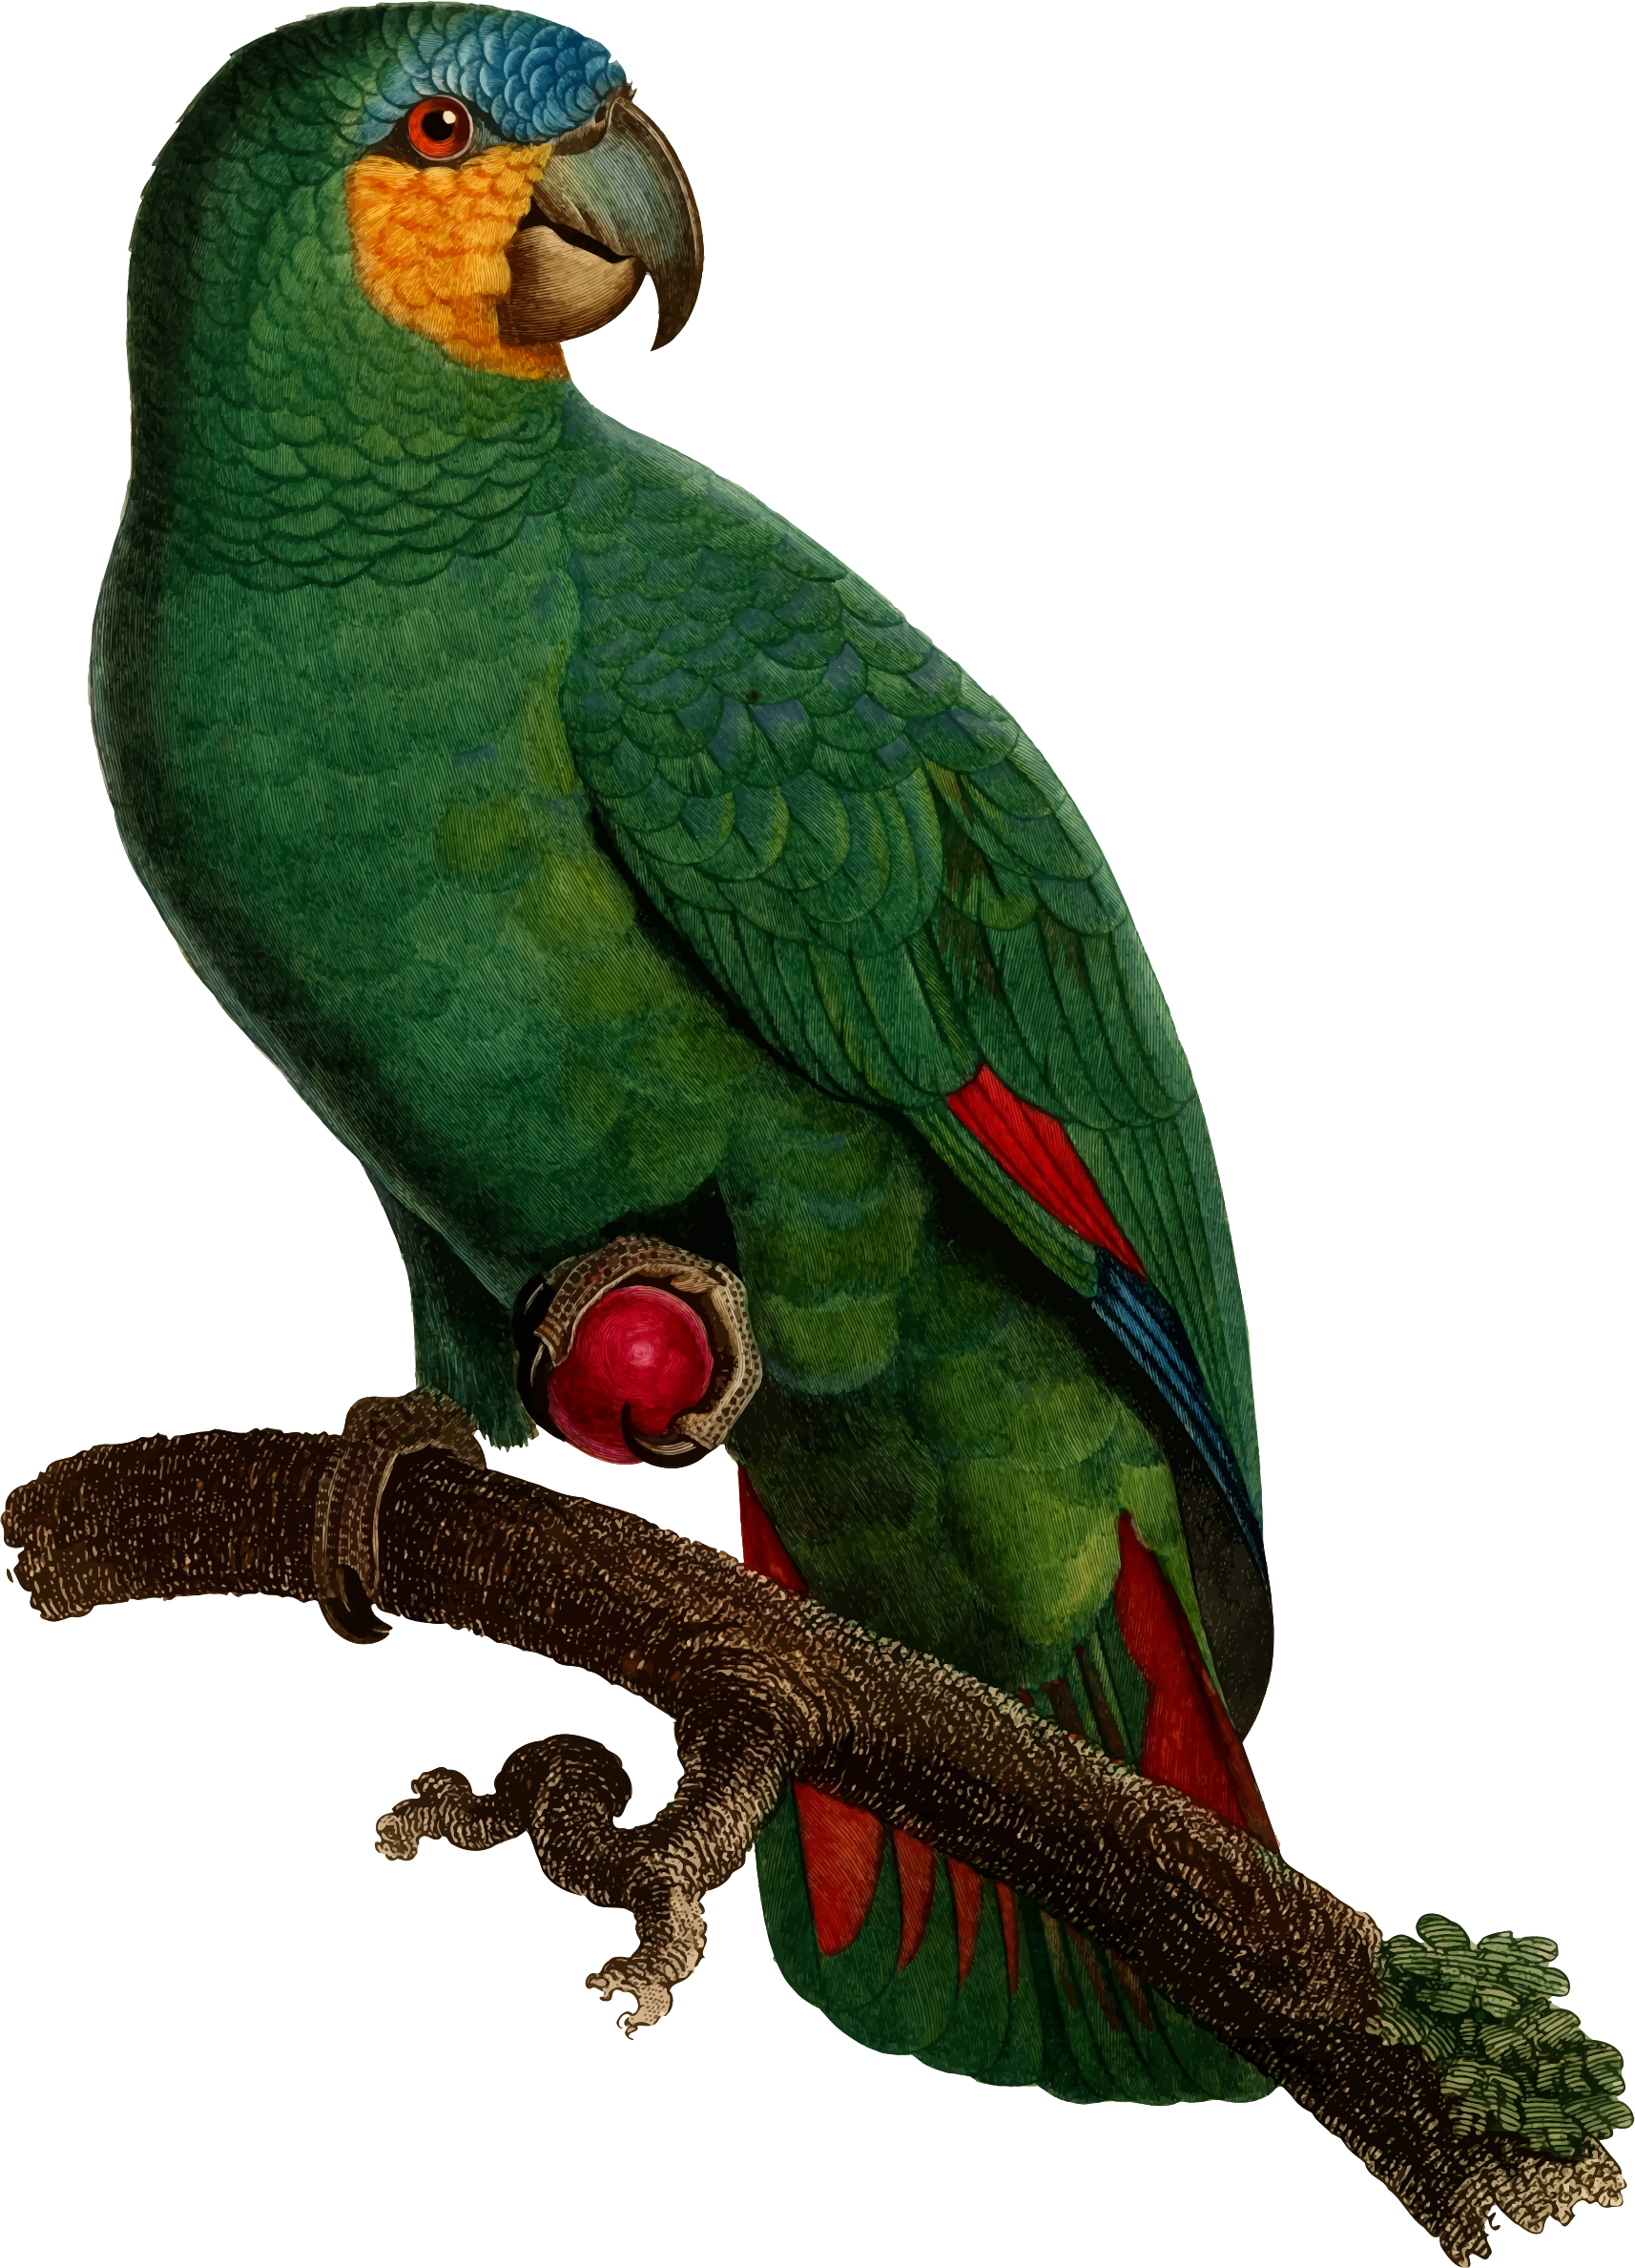 Free on dumielauxepices net. Parrot clipart perico